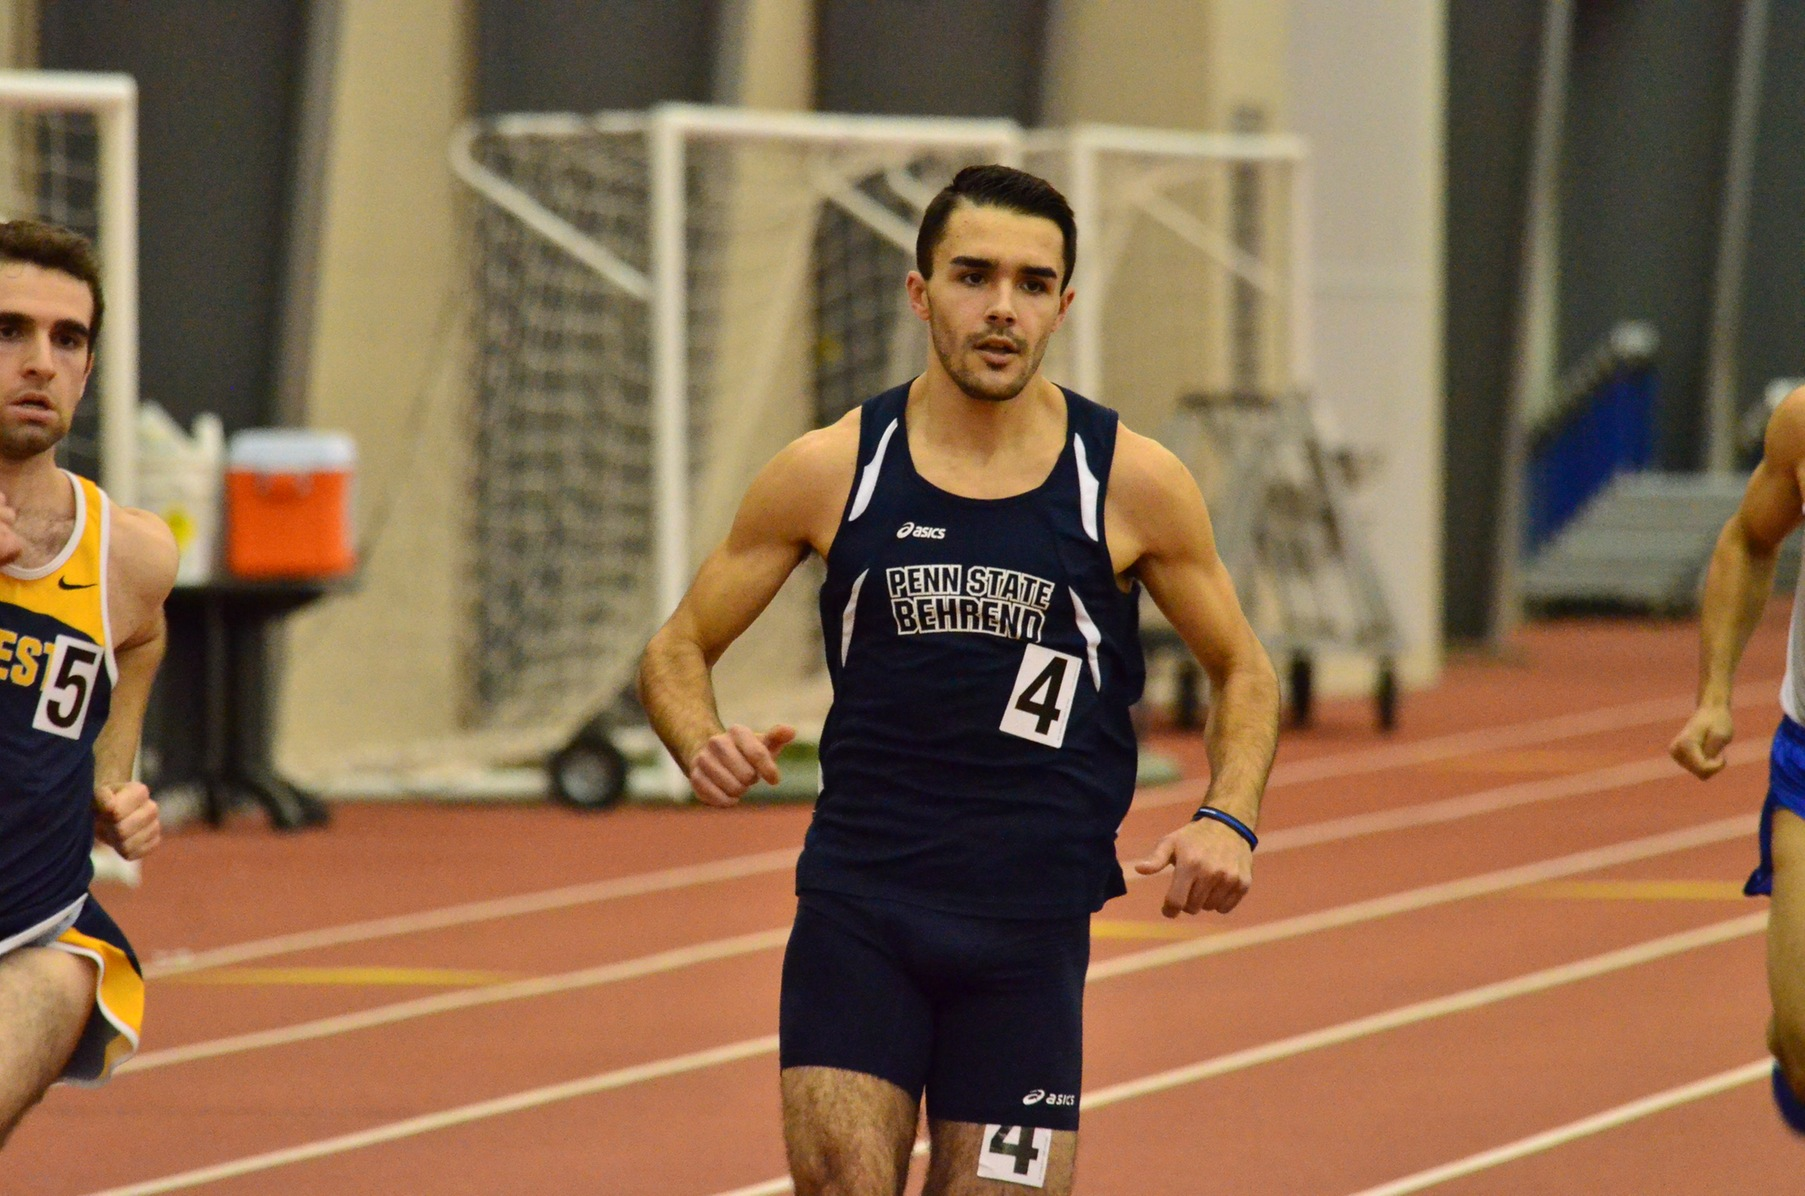 Men's Track and Field Returns to SPIRE